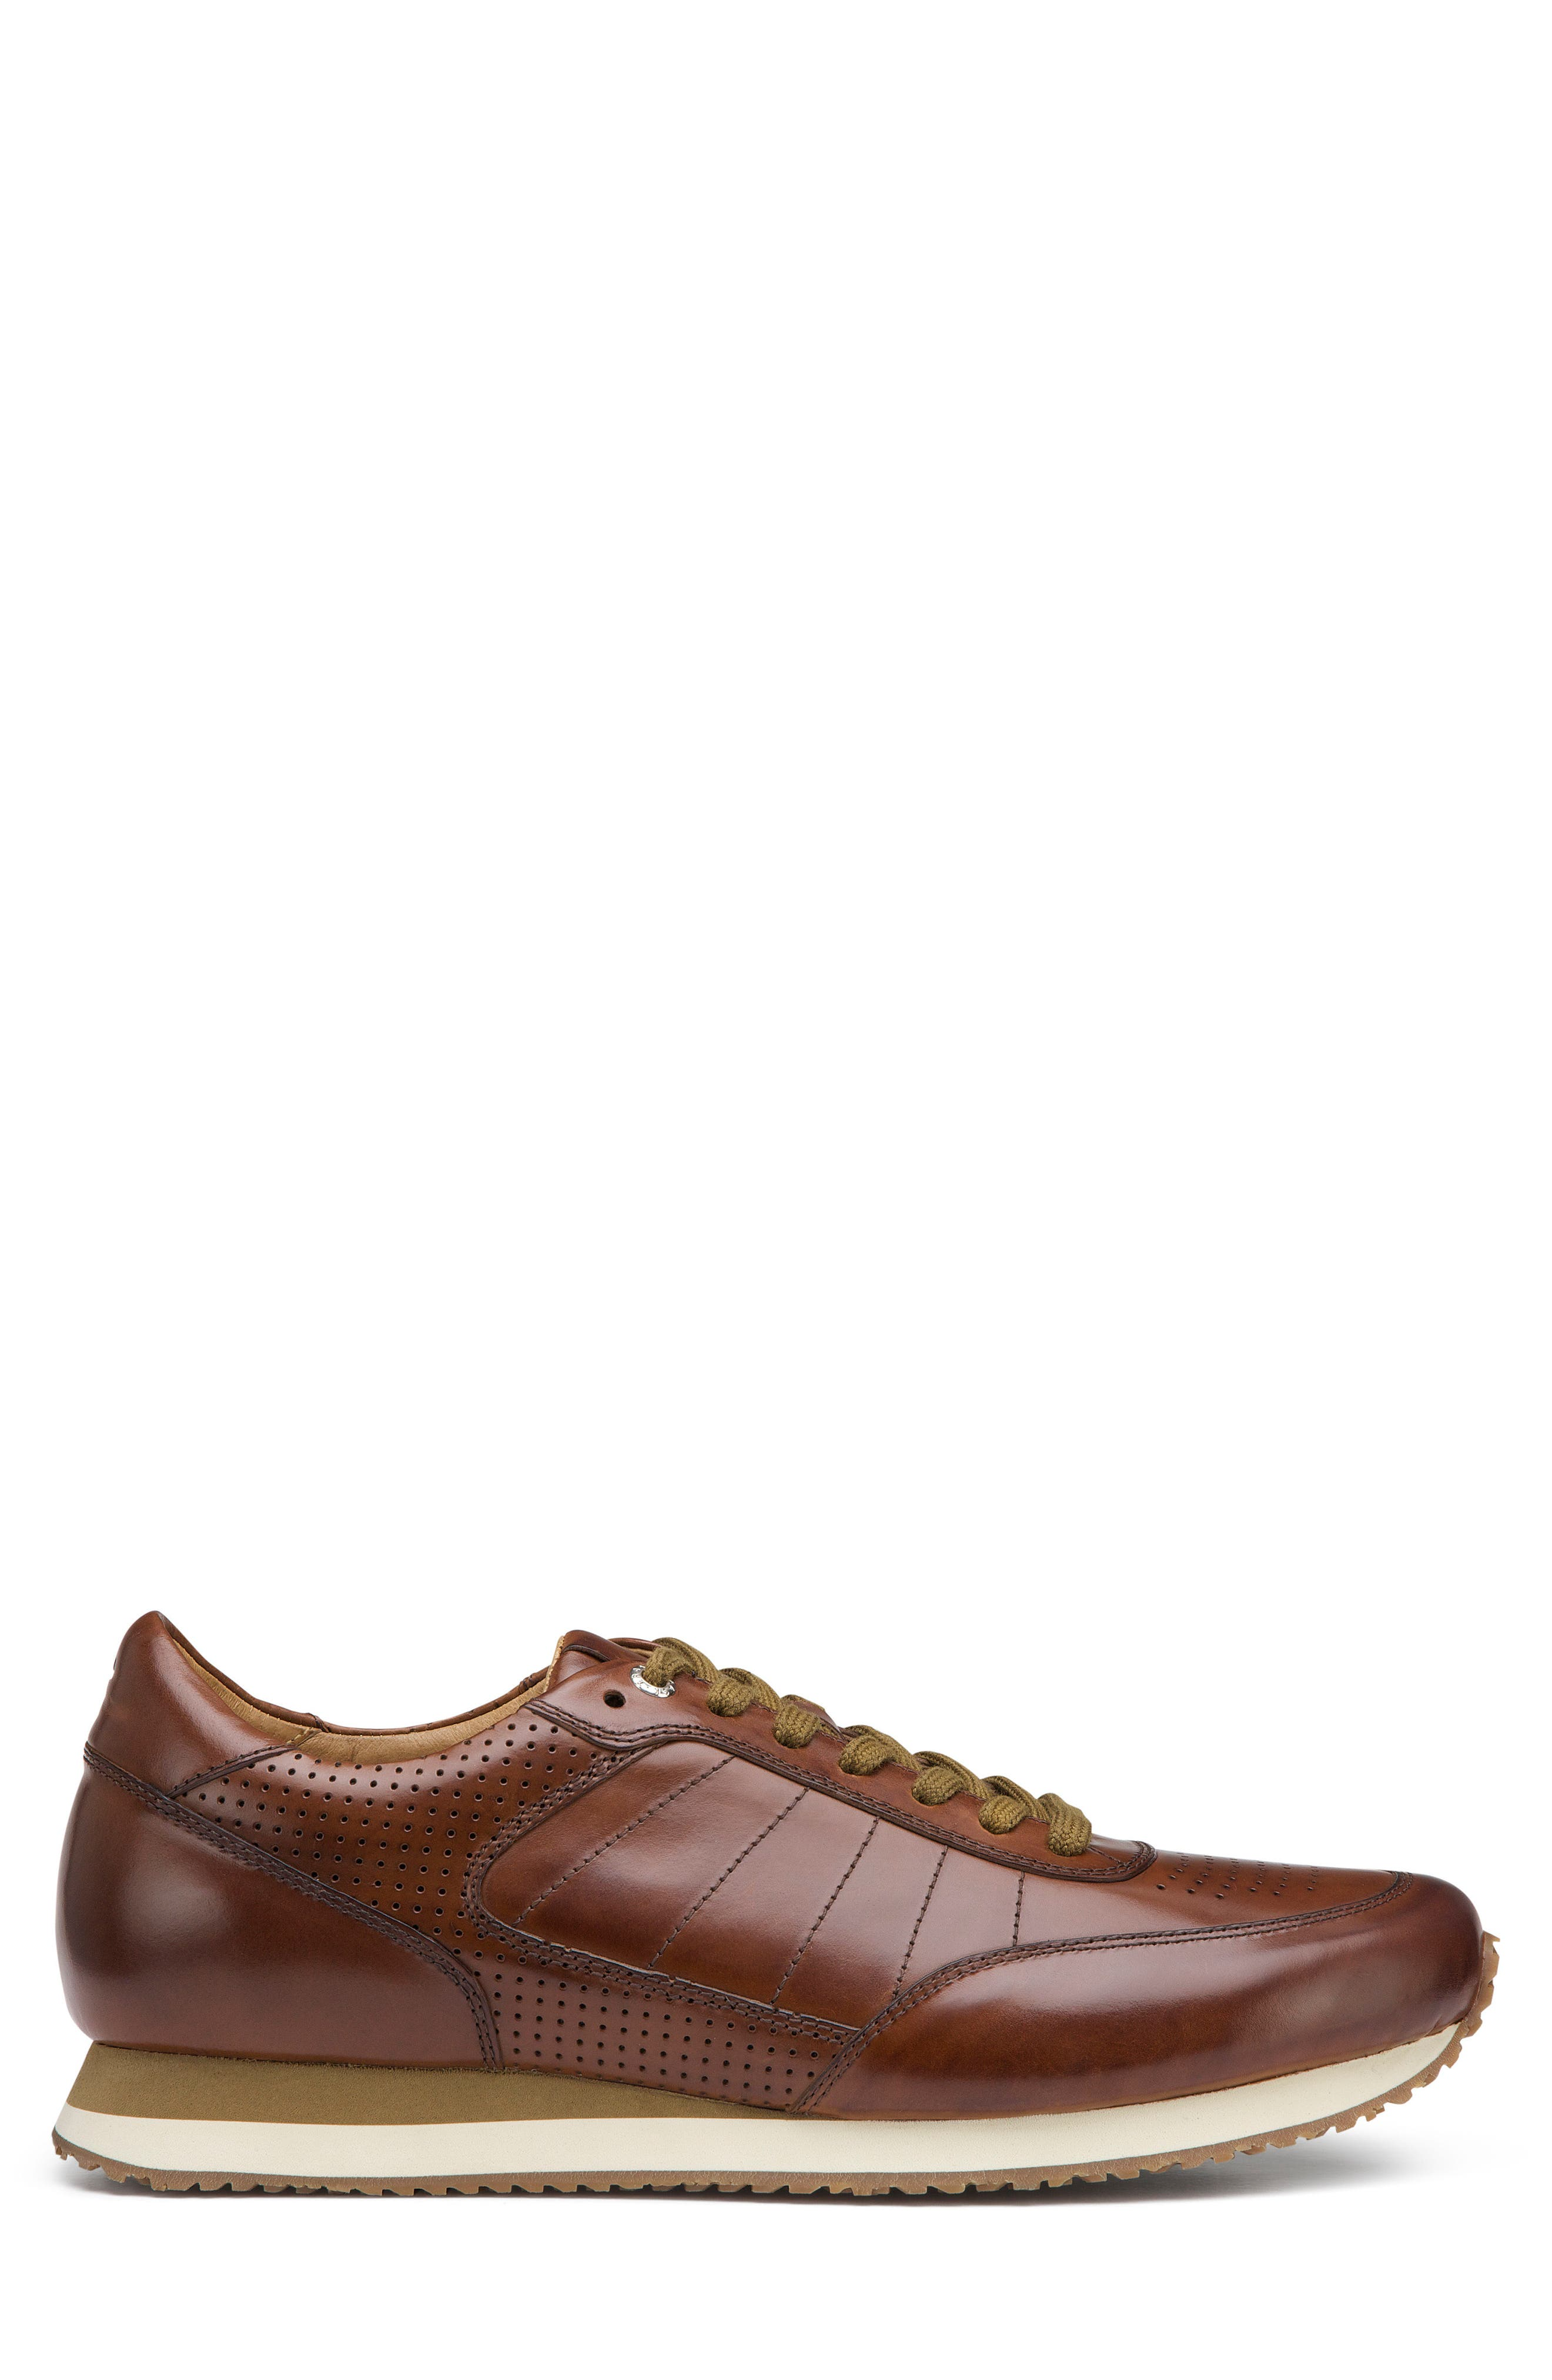 TRASK, Aiden Sneaker, Alternate thumbnail 3, color, BROWN LEATHER